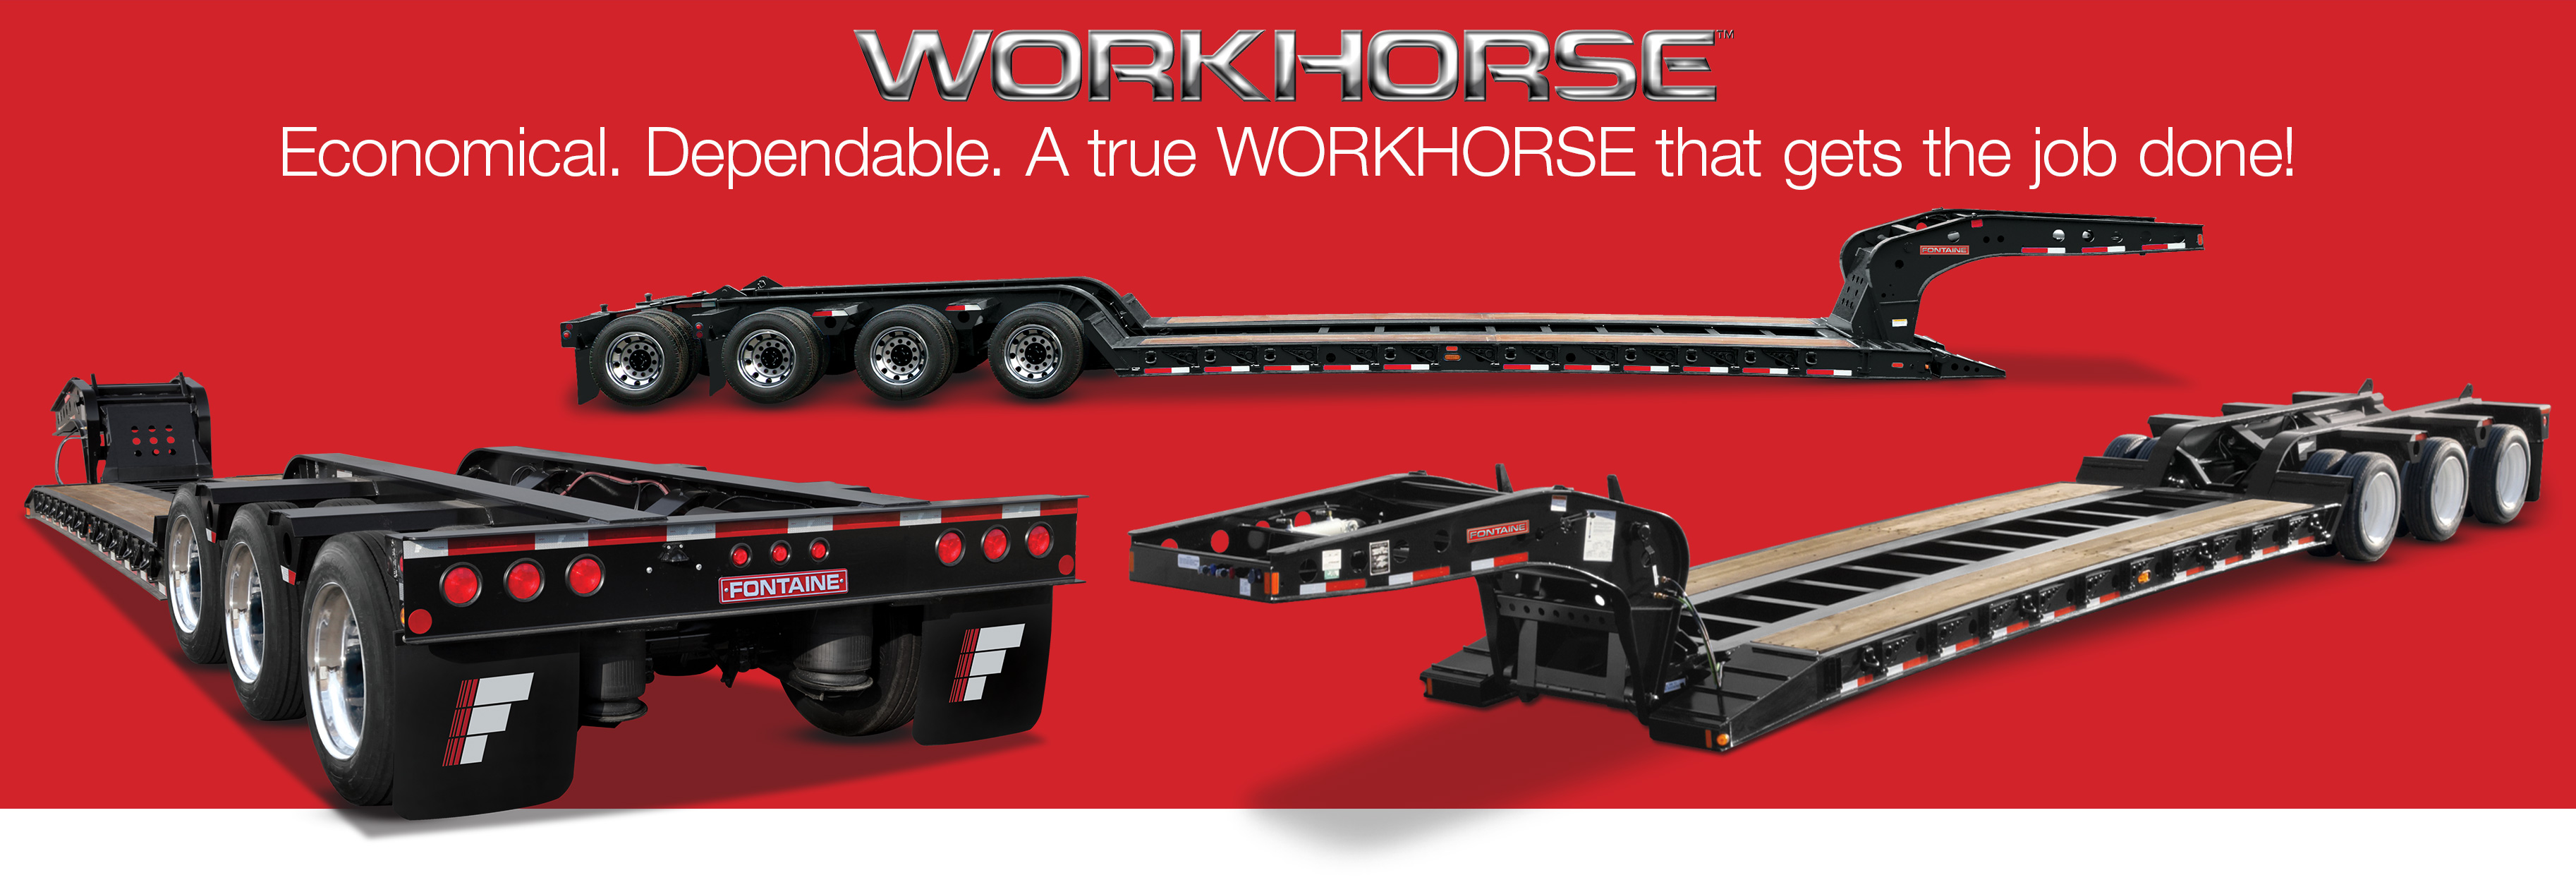 Fontaine Heavy Haul Workhorse Trailers